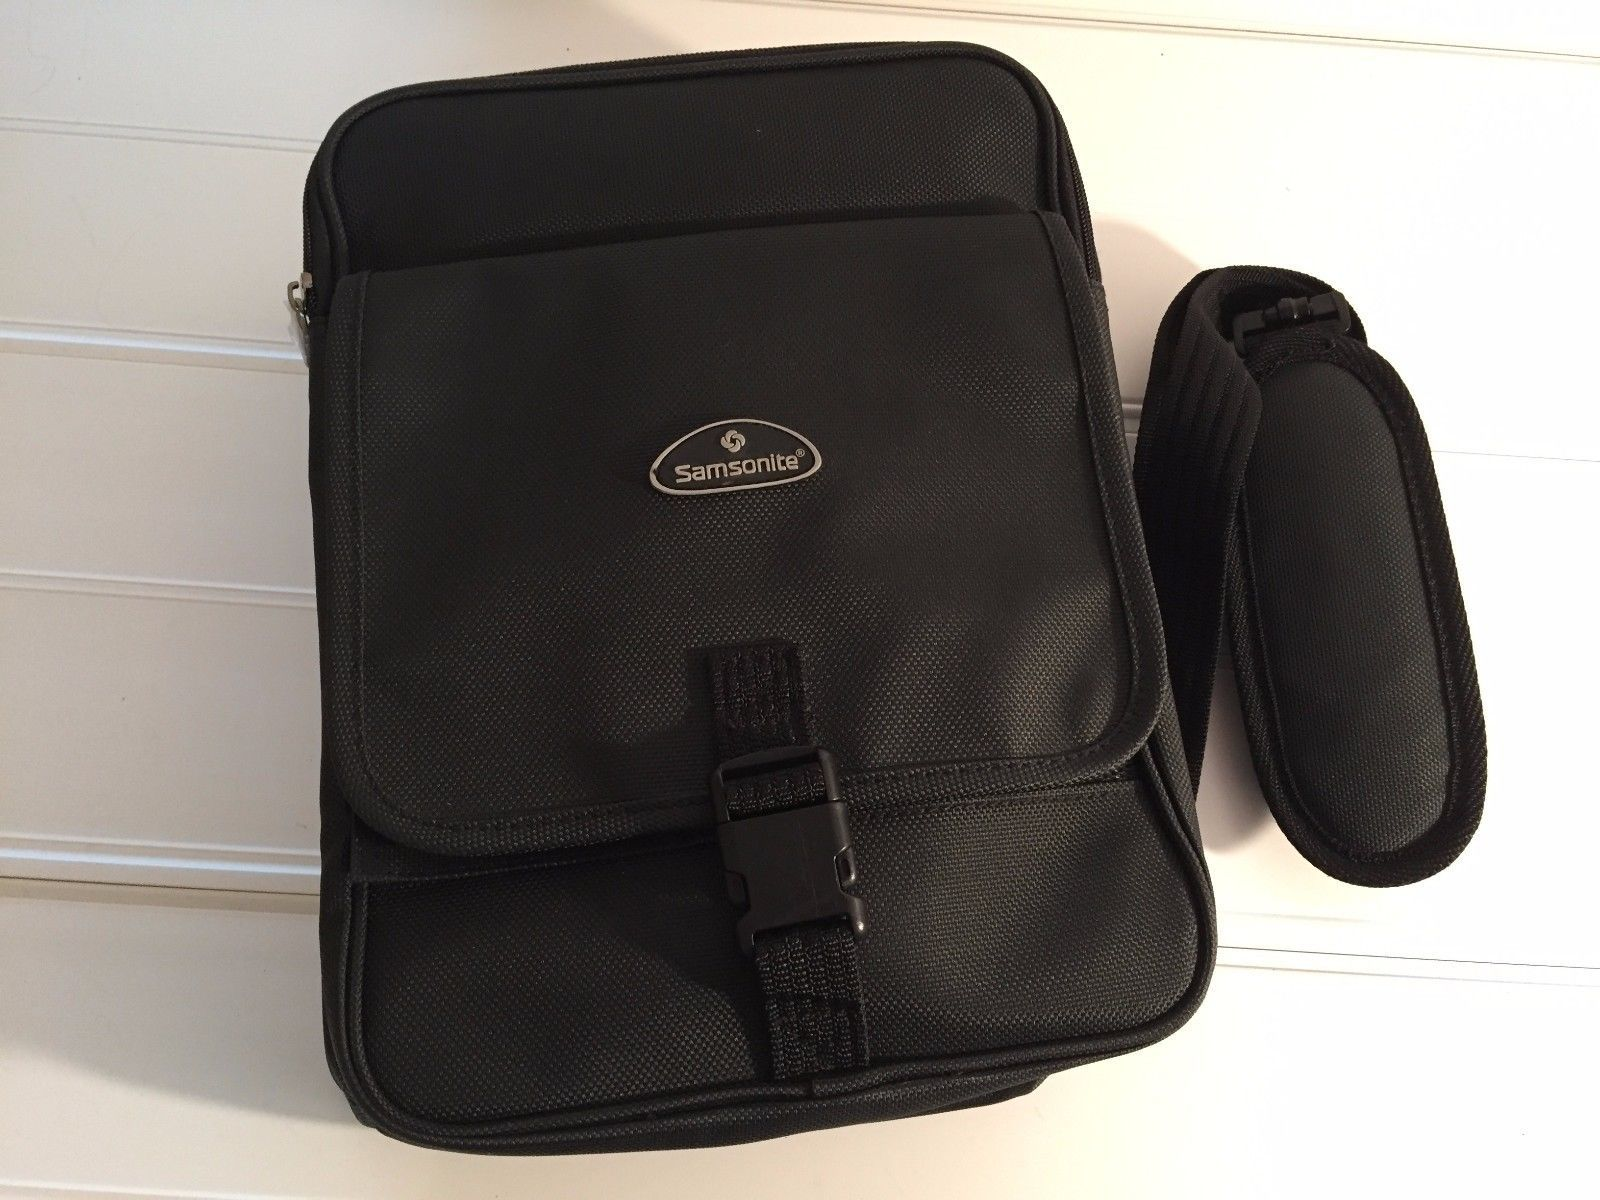 7053e9c794 Samsonite Carry On Travel Tote Bag and 50 similar items. S l1600